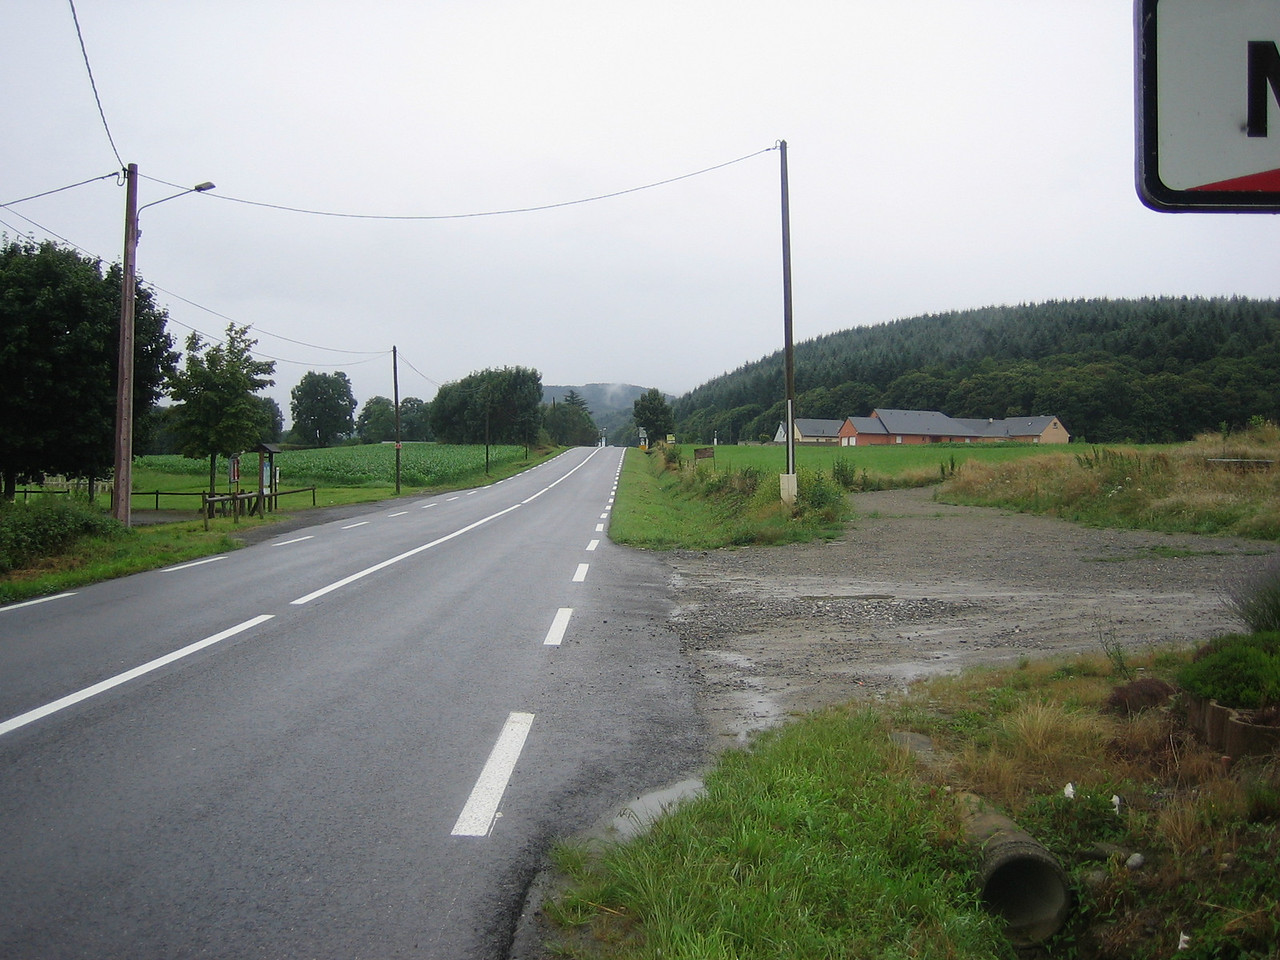 The road from Tarbes to Bagneres de Bigorre. A short day, but a rainy one!